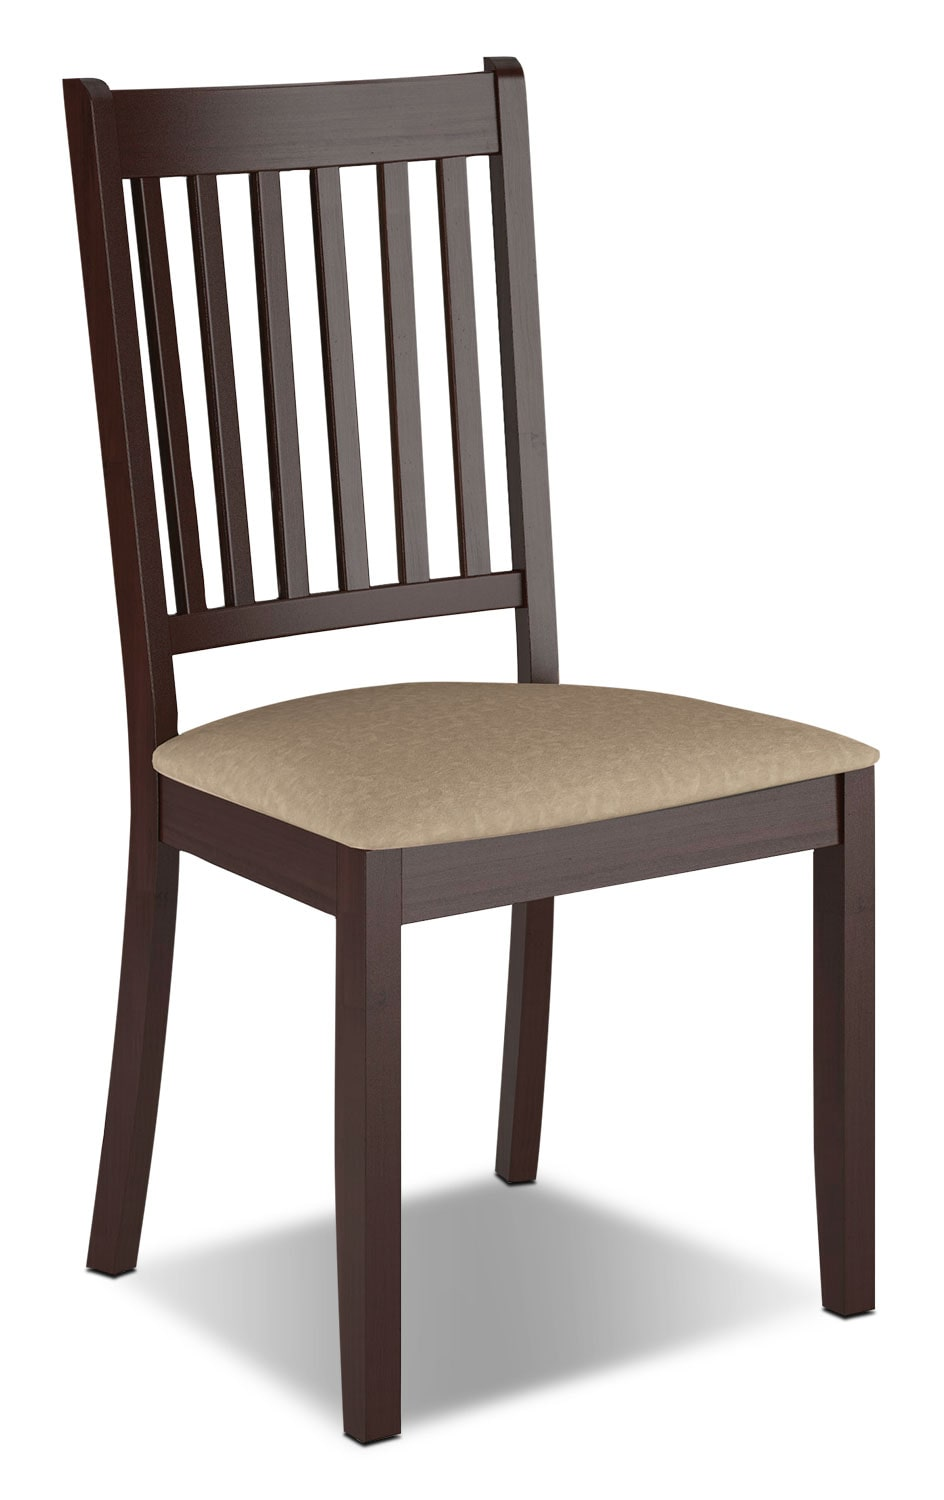 Dining Room Furniture - Atwood Dining Chair with Microfibre Seat - Beige